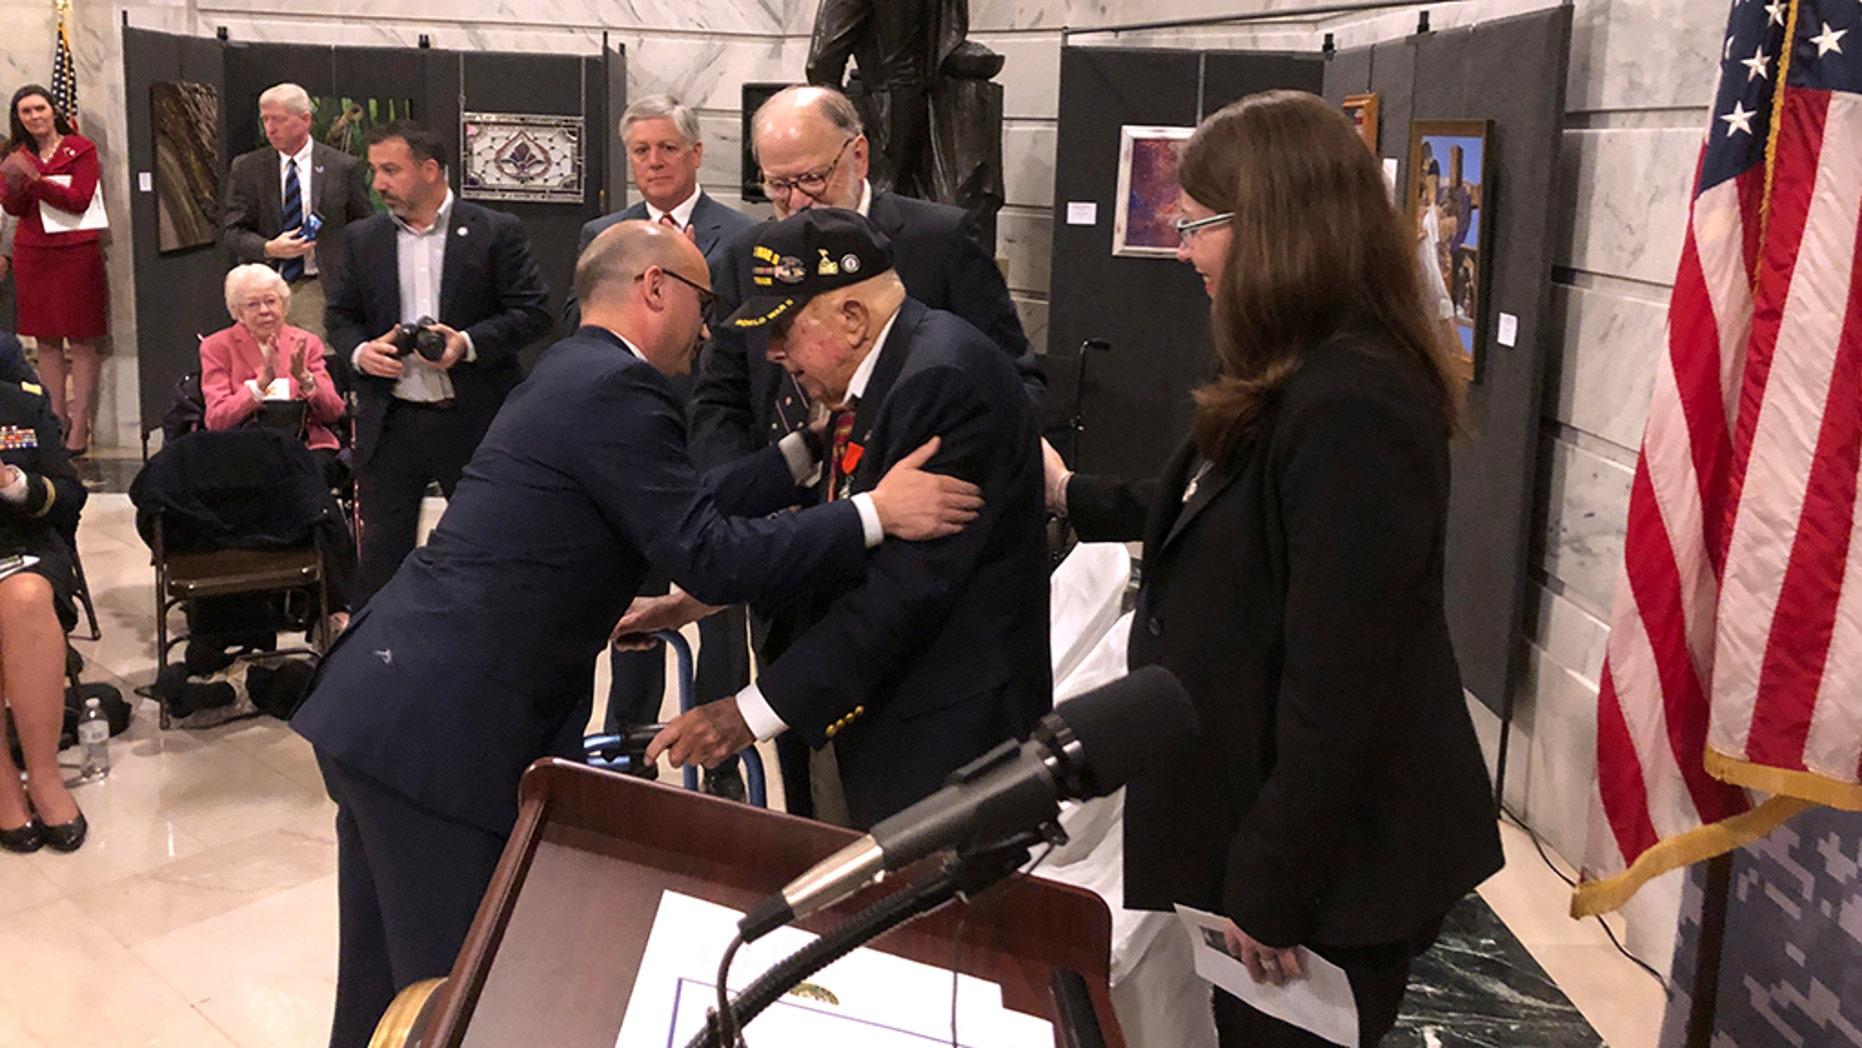 French Consul General Guillaume Lacroix, left, embraces retires Lt. Col. William Pollard after awarding him the French Legion of Honor on Monday, Nov. 19, 2018, in Frankfort, Kentucky. Pollard is a 100-year-old World War II veteran who lives in Kentucky. He was part of the Allied invasion of France in 1944. (AP Photo/Adam Beam)